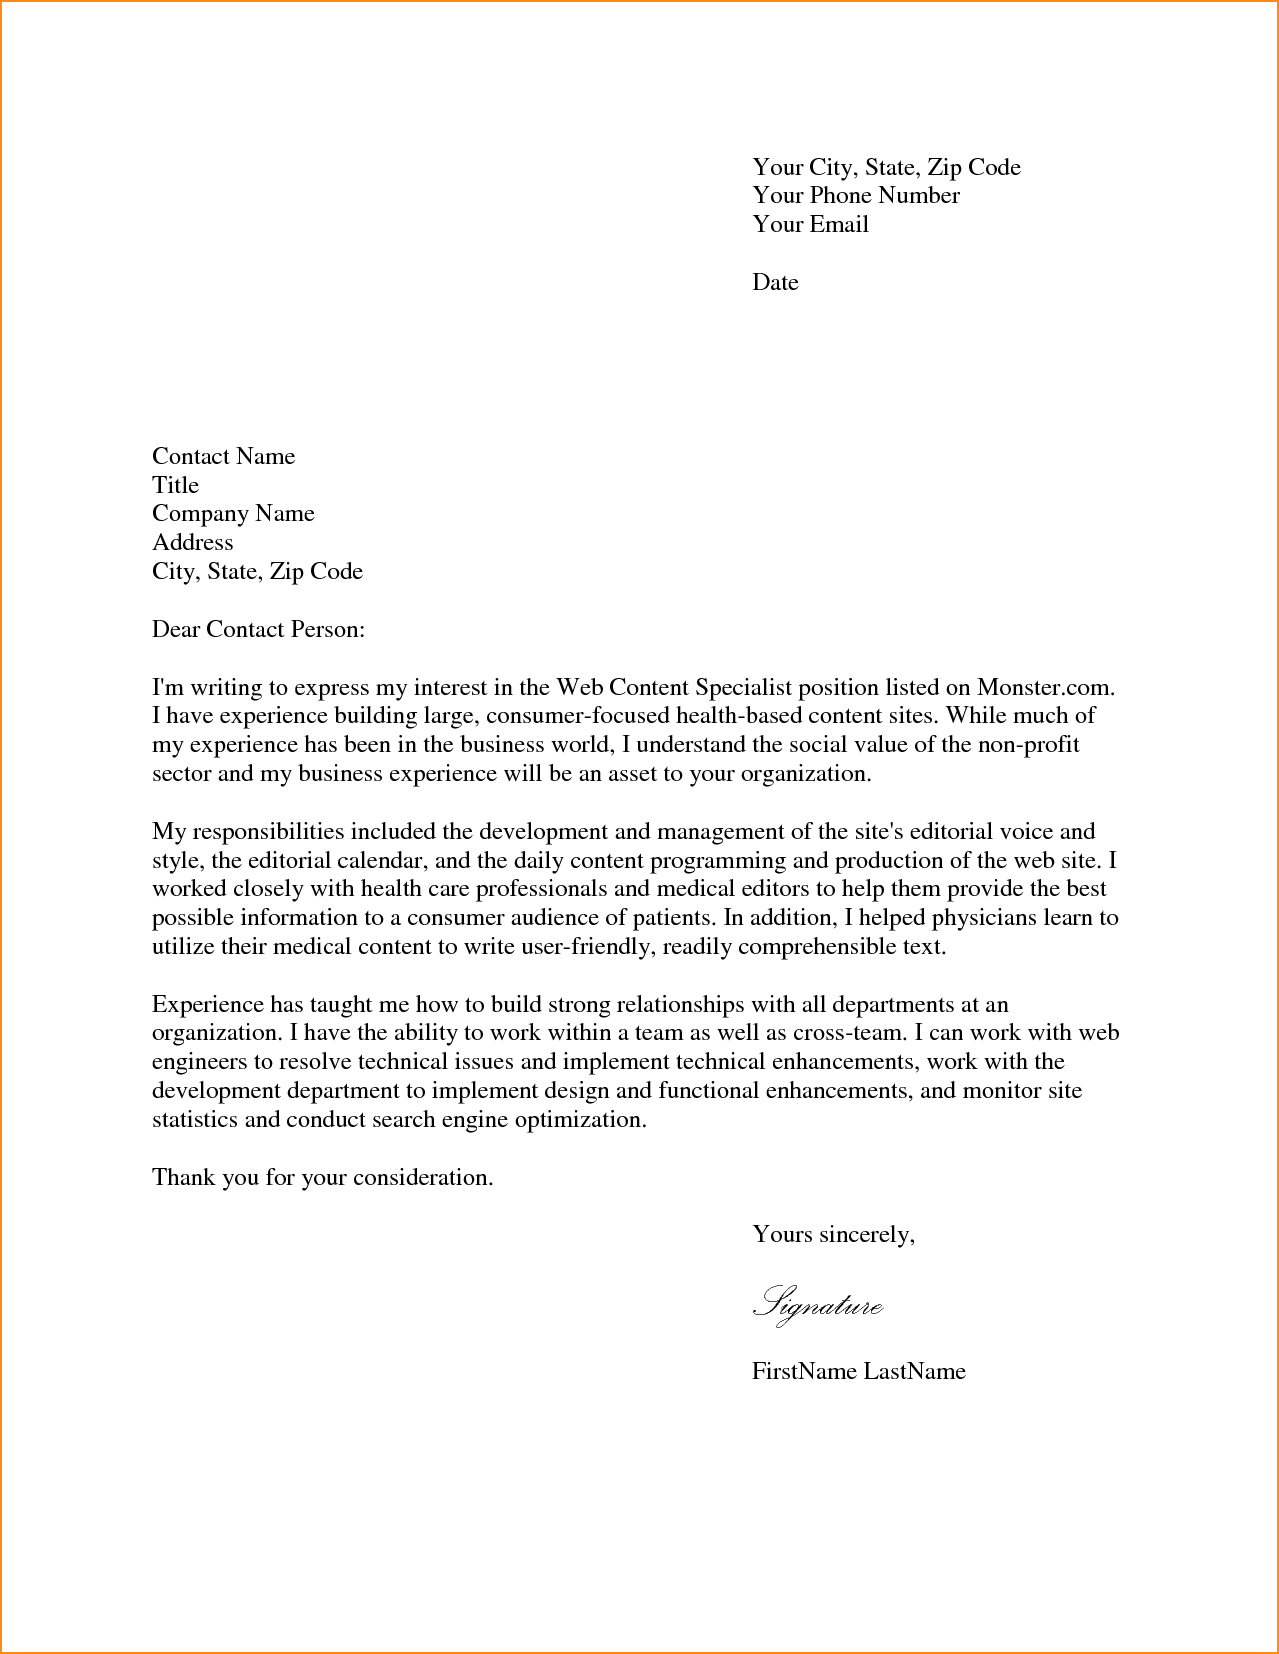 New A Letter for Applying for A Job Job cover letter